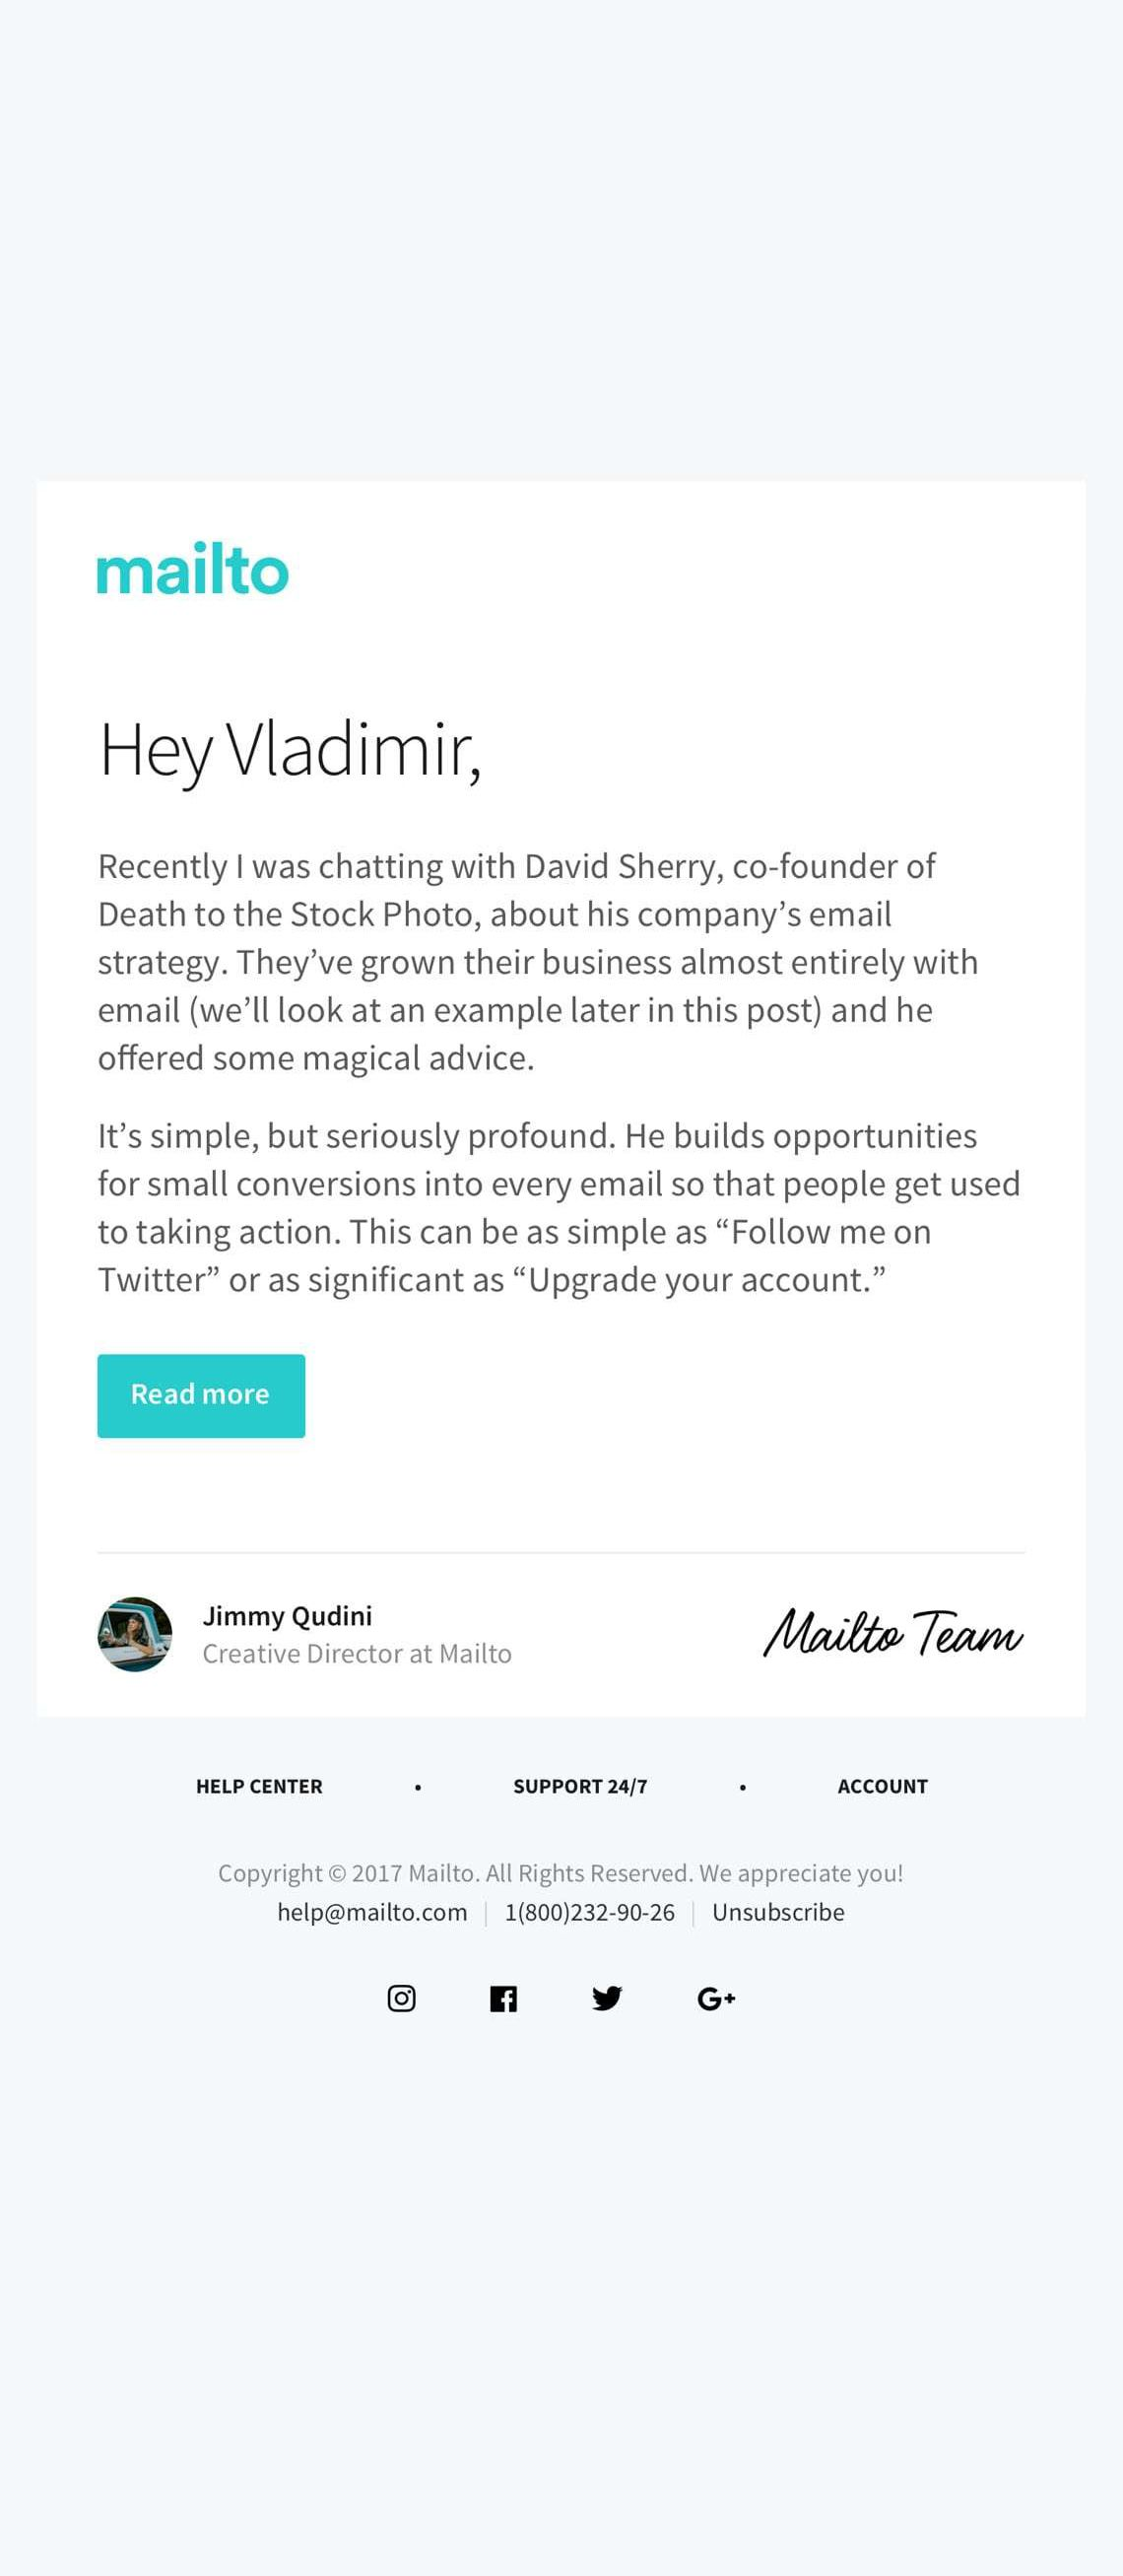 007 Impressive Email Template Free Download Photo  Newsletter Psd Signature Word BusinesFull